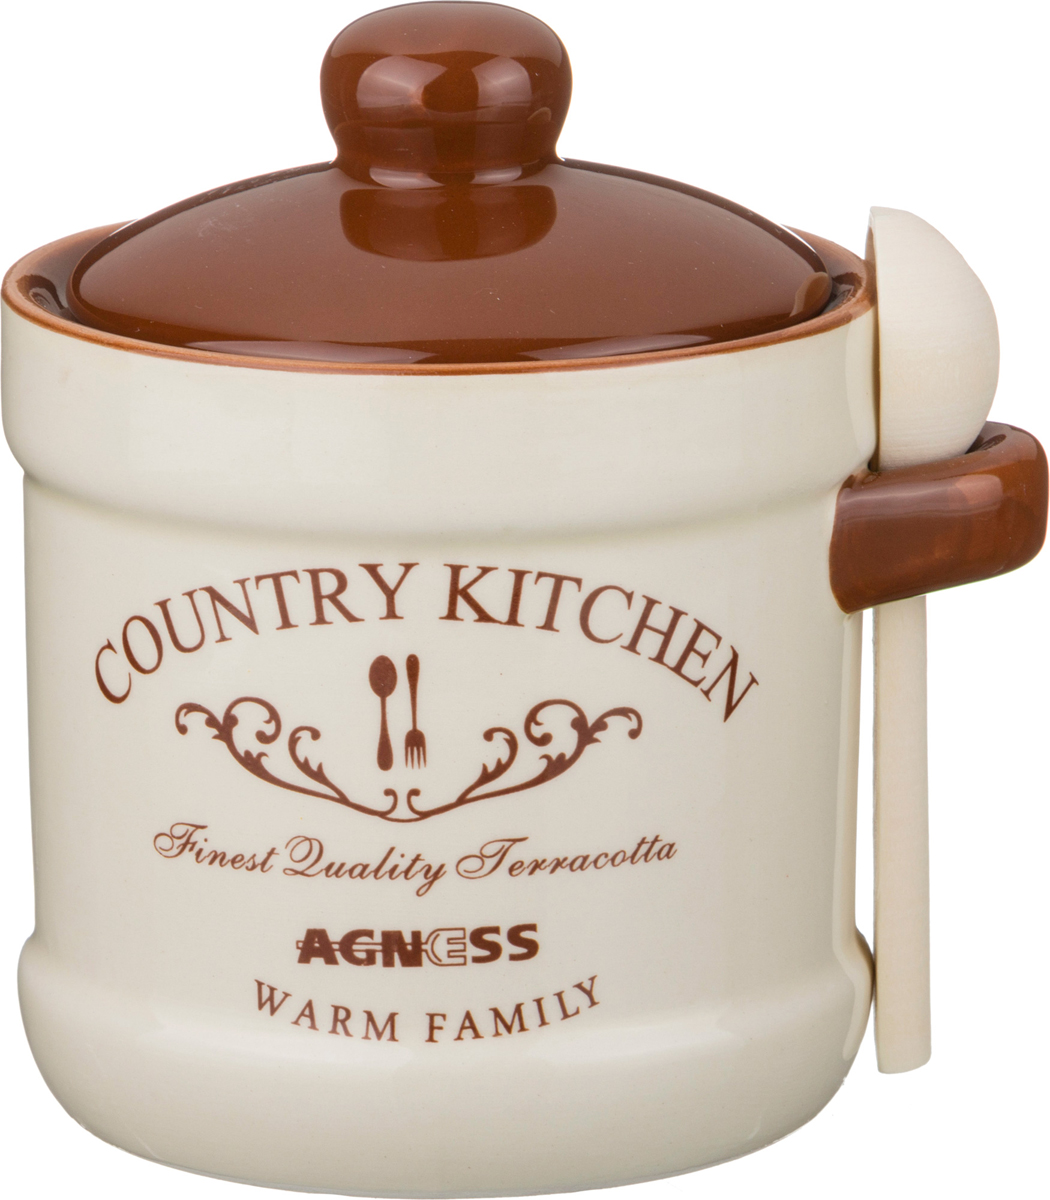 Баночка Country kitchen, 12 см, 10 см, 350 мл, Керамика, Agness, Германия, Country kitchen